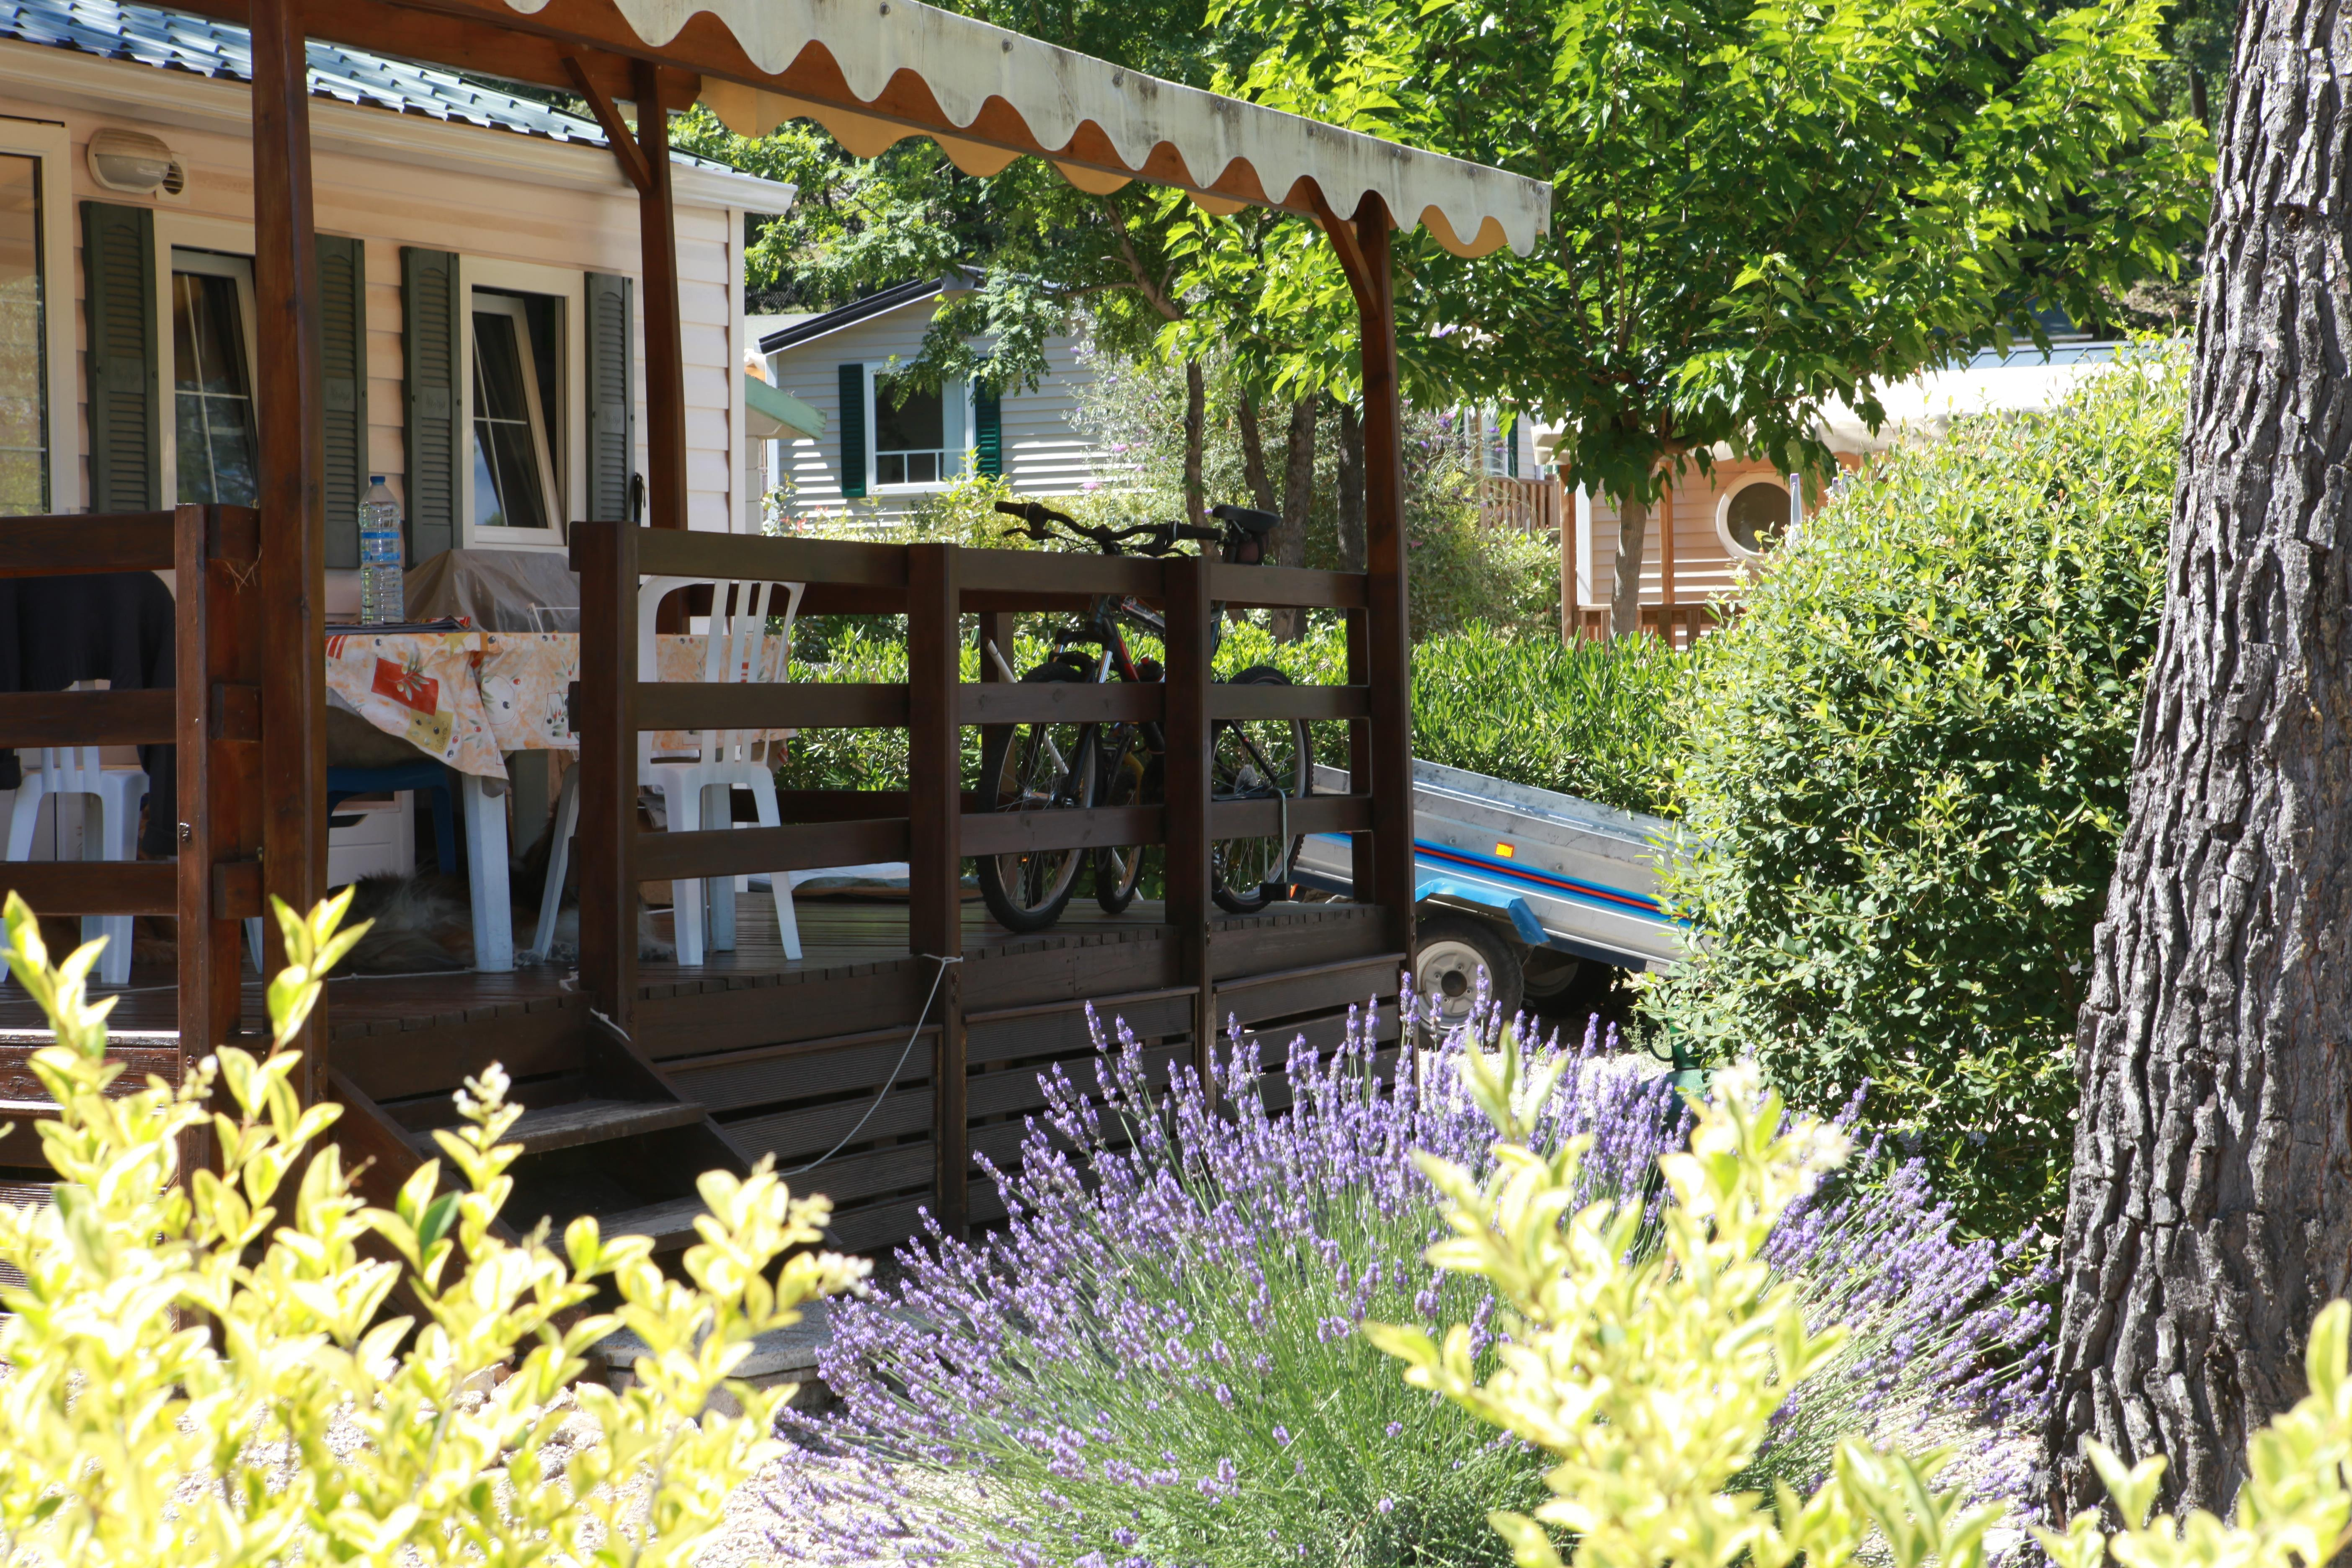 Location - Mobilhome Standard 3 Chambres Climatisé - Camping Les Blimouses